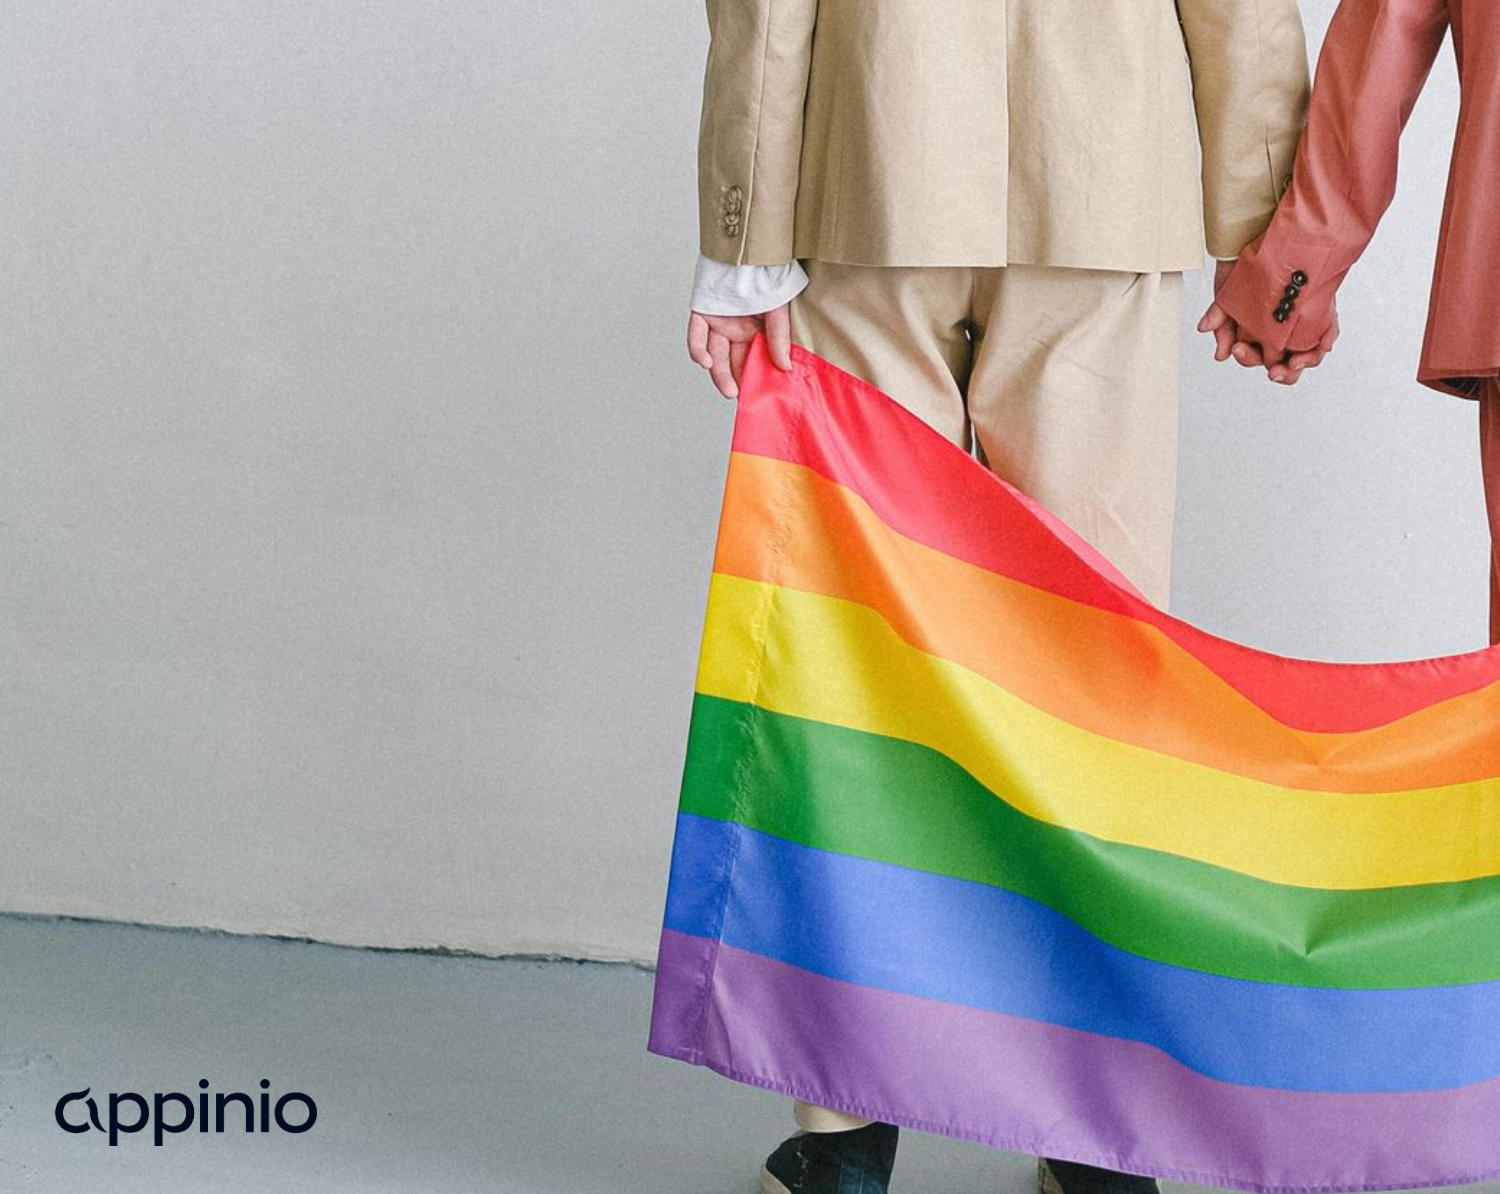 A same-sex couple holding hands and the rainbow-coloured LGBTQ+ flag.